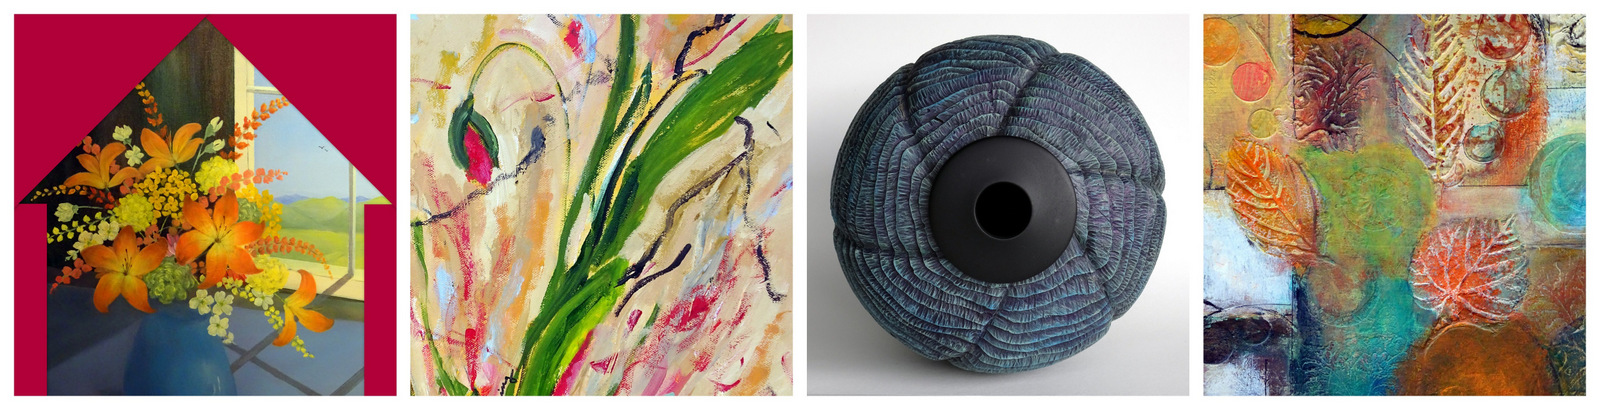 Details from the artwork of: ANN WHISENANT, SUSAN HANNING, STEVE MILLER and KAREN PAQUETTE.